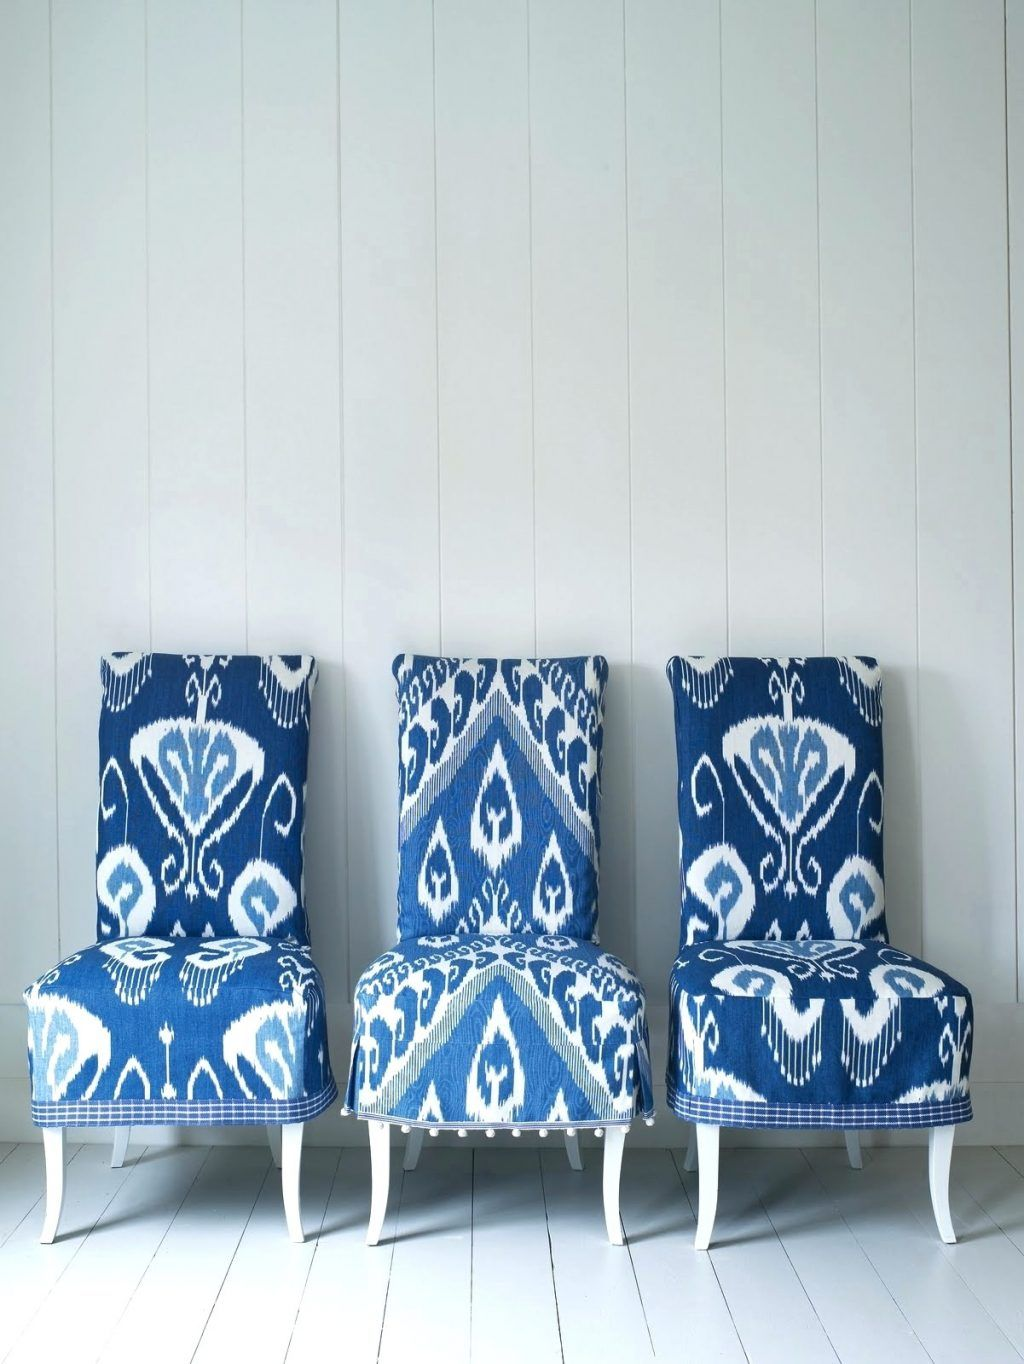 Dining Chairs Blue And White Ikat Chairs Via Interiors Nut